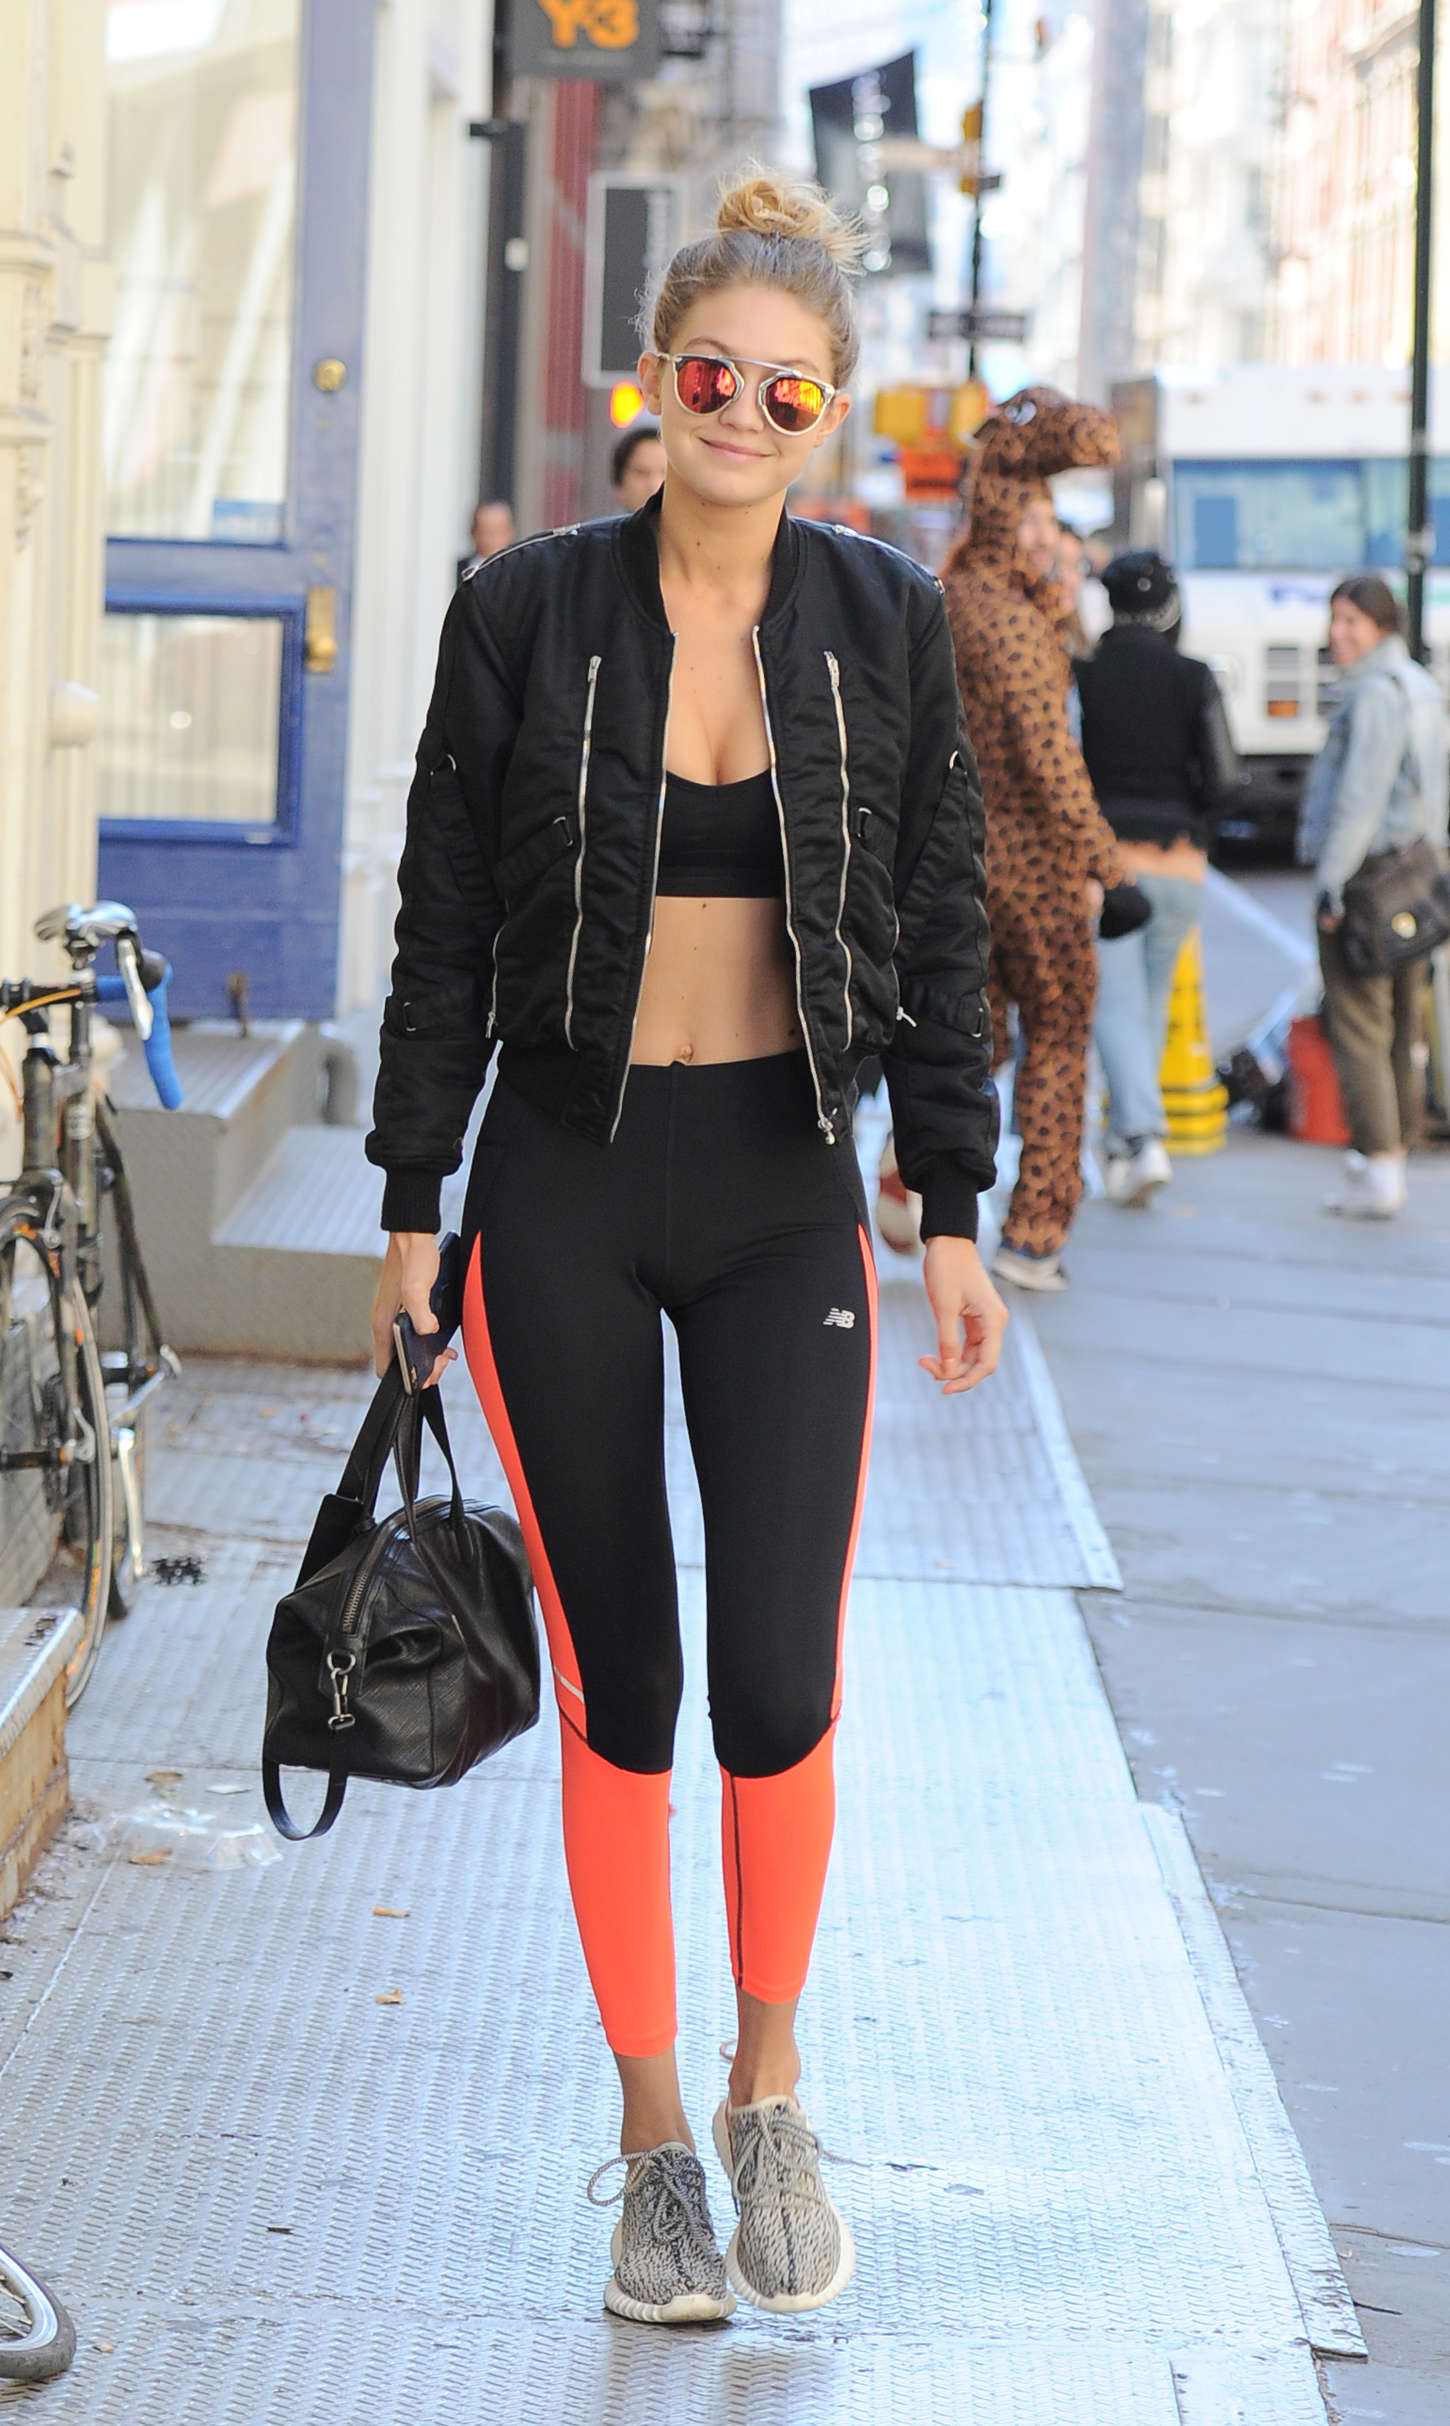 Gigi Hadid in Sports Bra and Tights -09 - GotCeleb